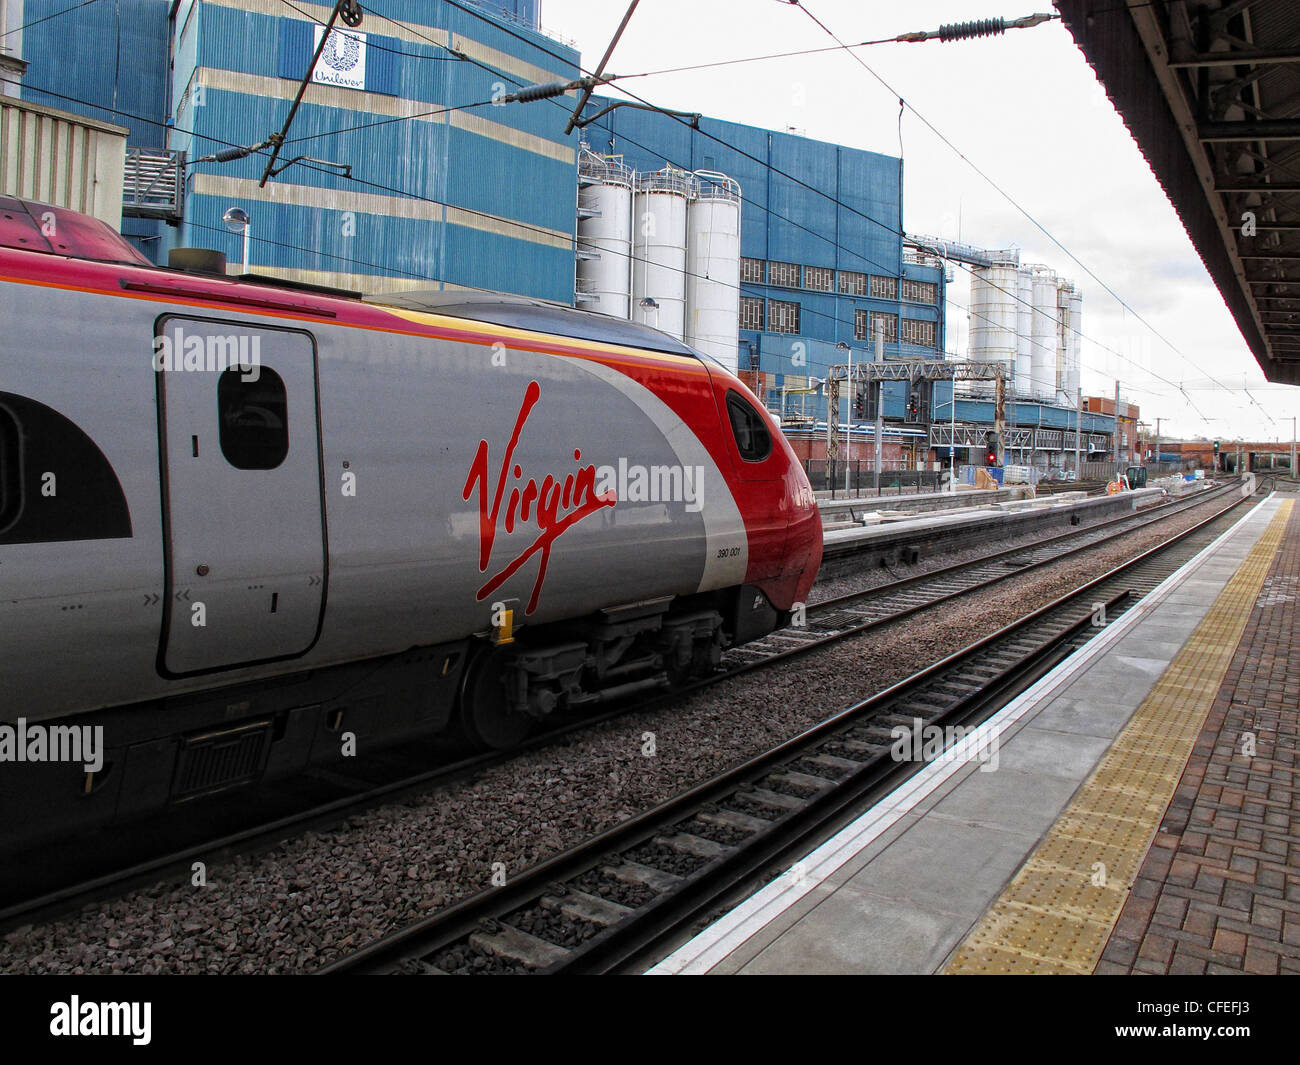 Virgin,Pendo,Pendolino,train,standing,at,platform,three,3,gotonysmith,Warrington,Bank,Quay,railway,station,Parker,St,Warrington,Cheshire,Voyager,express,west,coast,main,line,mainline,westcoast,Unilever,factory,background,Crossfields,Crossfield,Lever,Bros,Brothers,local,intercity,arrived,arriving,Glasgow,Euston,Birmingham,Crewe,depart,departing,looking,up,the,platform,toward,towards,north,NW,no,kissing,nokissing,gotonysmith,Warringtonians,Buy Pictures of,Buy Images Of